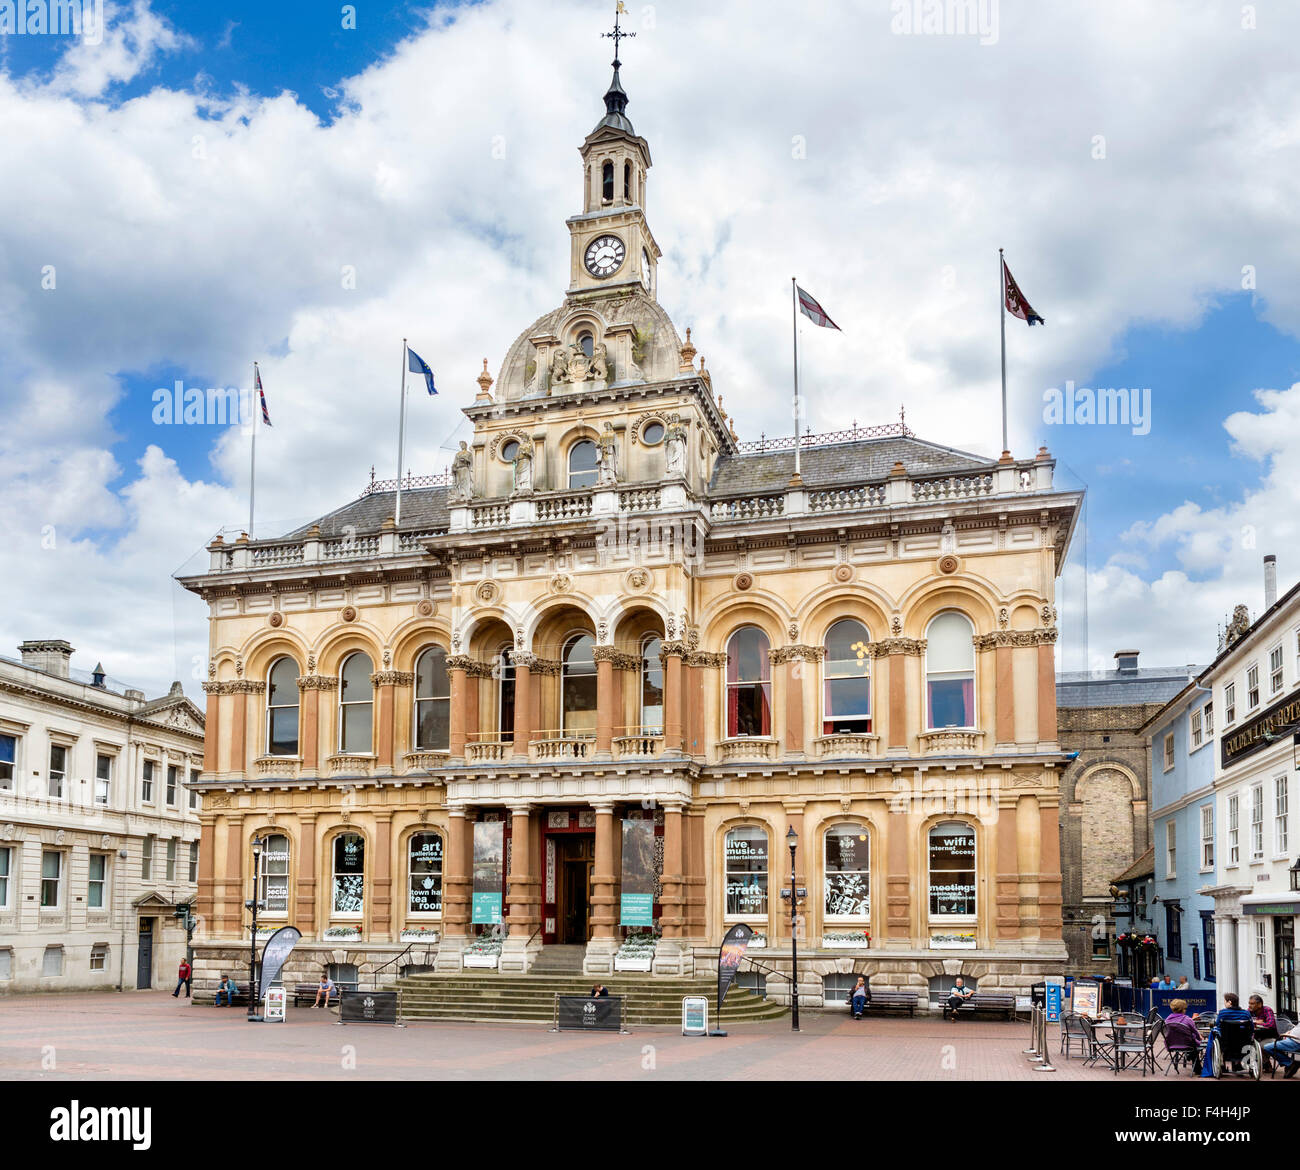 The Town Hall, Ipswich, Suffolk, England, UK - Stock Image